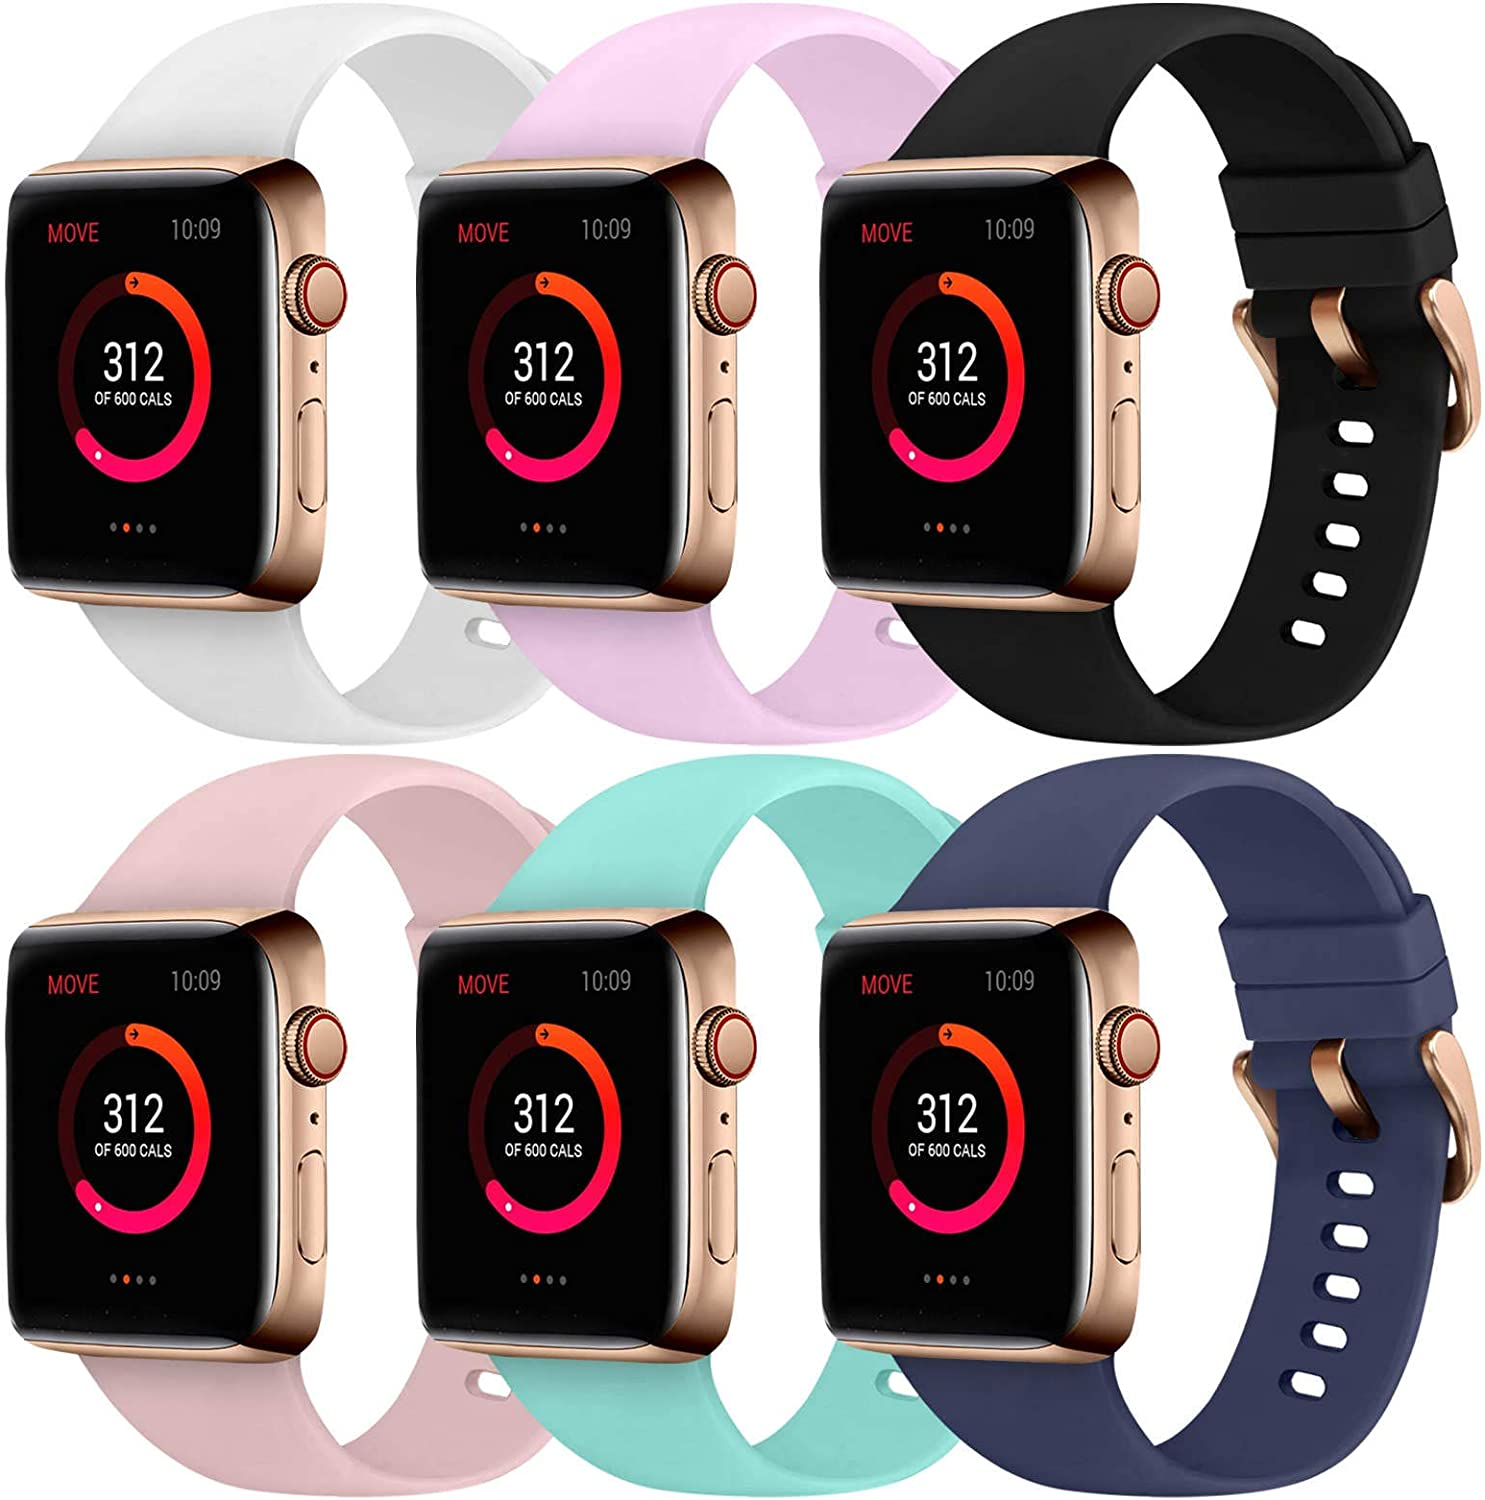 Abincee 6PCS Bands Compatible with Apple Watch 38mm 40mm 42mm 44mm with Rose Gold Buckle,replacement band for iWatch Series 6/5/4/3/2/1 (Black/White/Midnight Blue/Lavender/Teal/Sand Pink, 38mm/40mm)